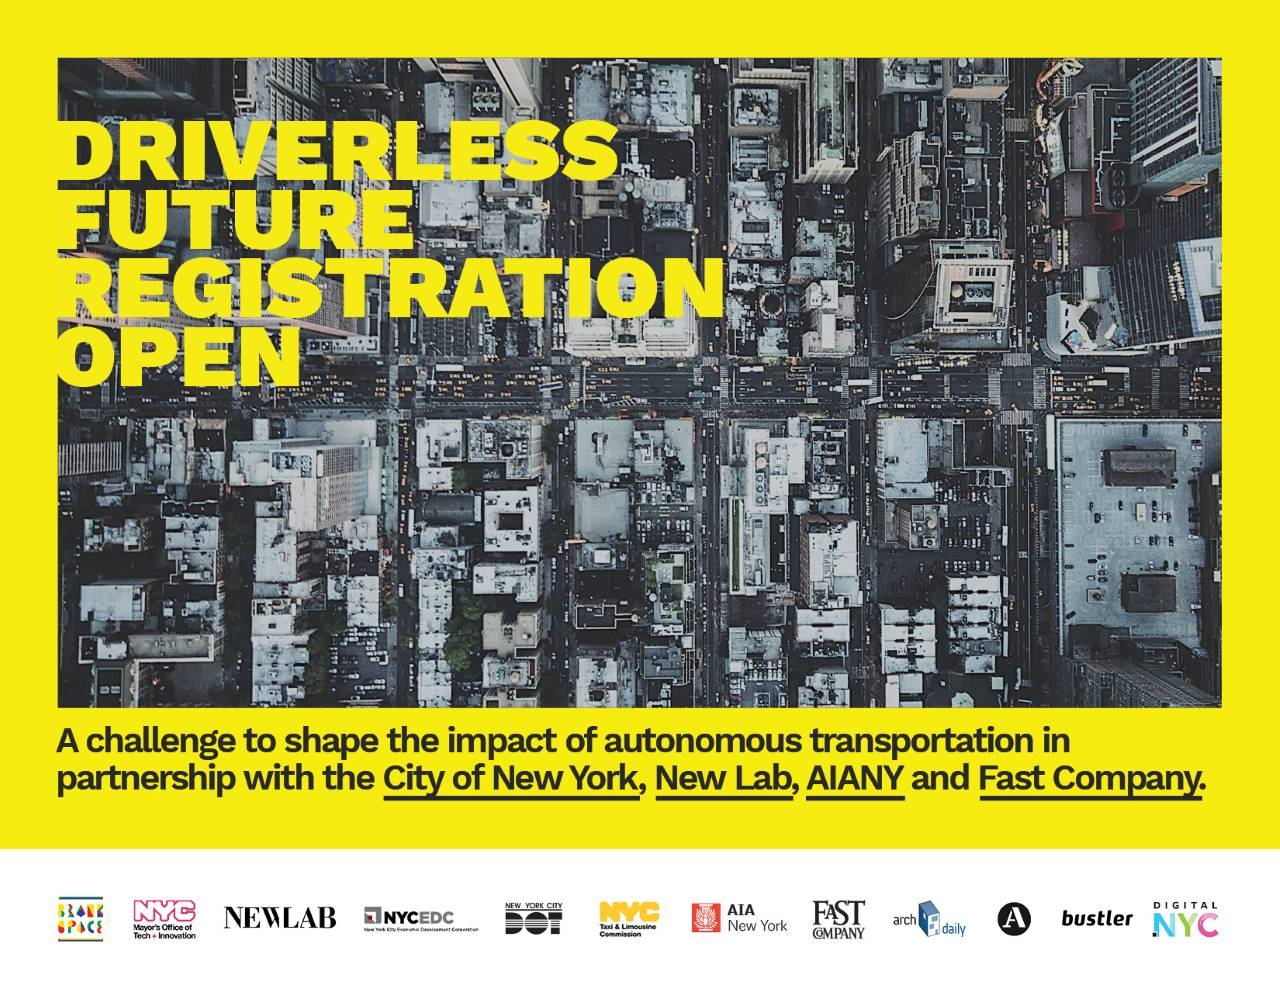 Blank Space Driverless Future Challenge : Photo © Blank Space